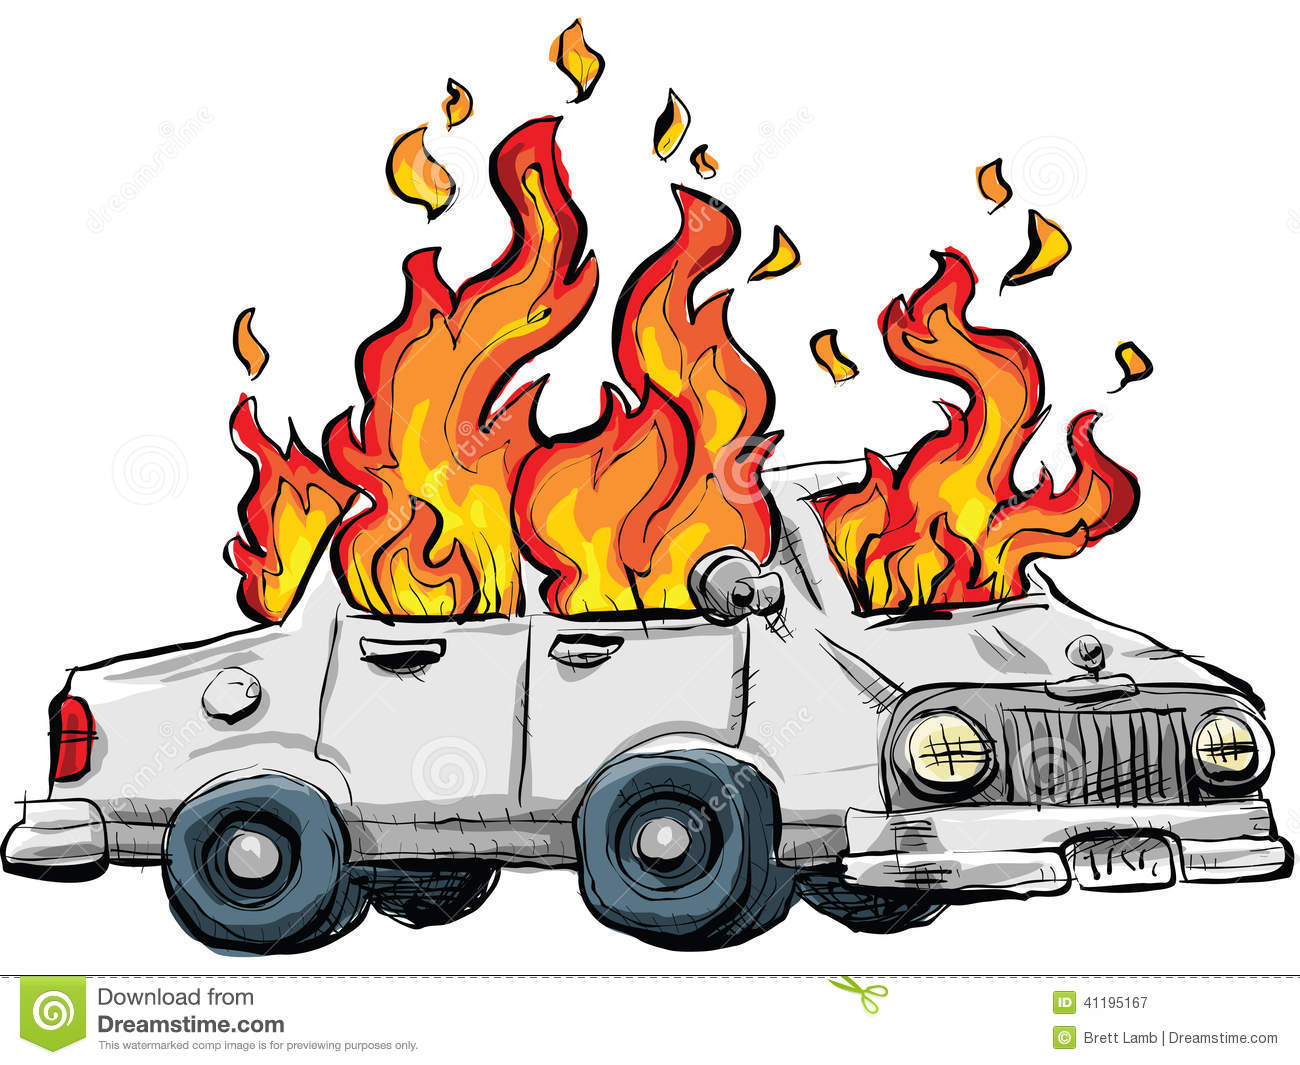 heat map free with Stock Illustration Burning Car Cartoon Burns Flames Image41195167 on File Triangle warning sign  black and yellow also Stock Illustration Burning Car Cartoon Burns Flames Image41195167 also Line Icon together with Weil McLain 510 218 097  bination Pressure Temperature Gauge Boiler Sizes 85 125 as well Standing Seam Canopies.